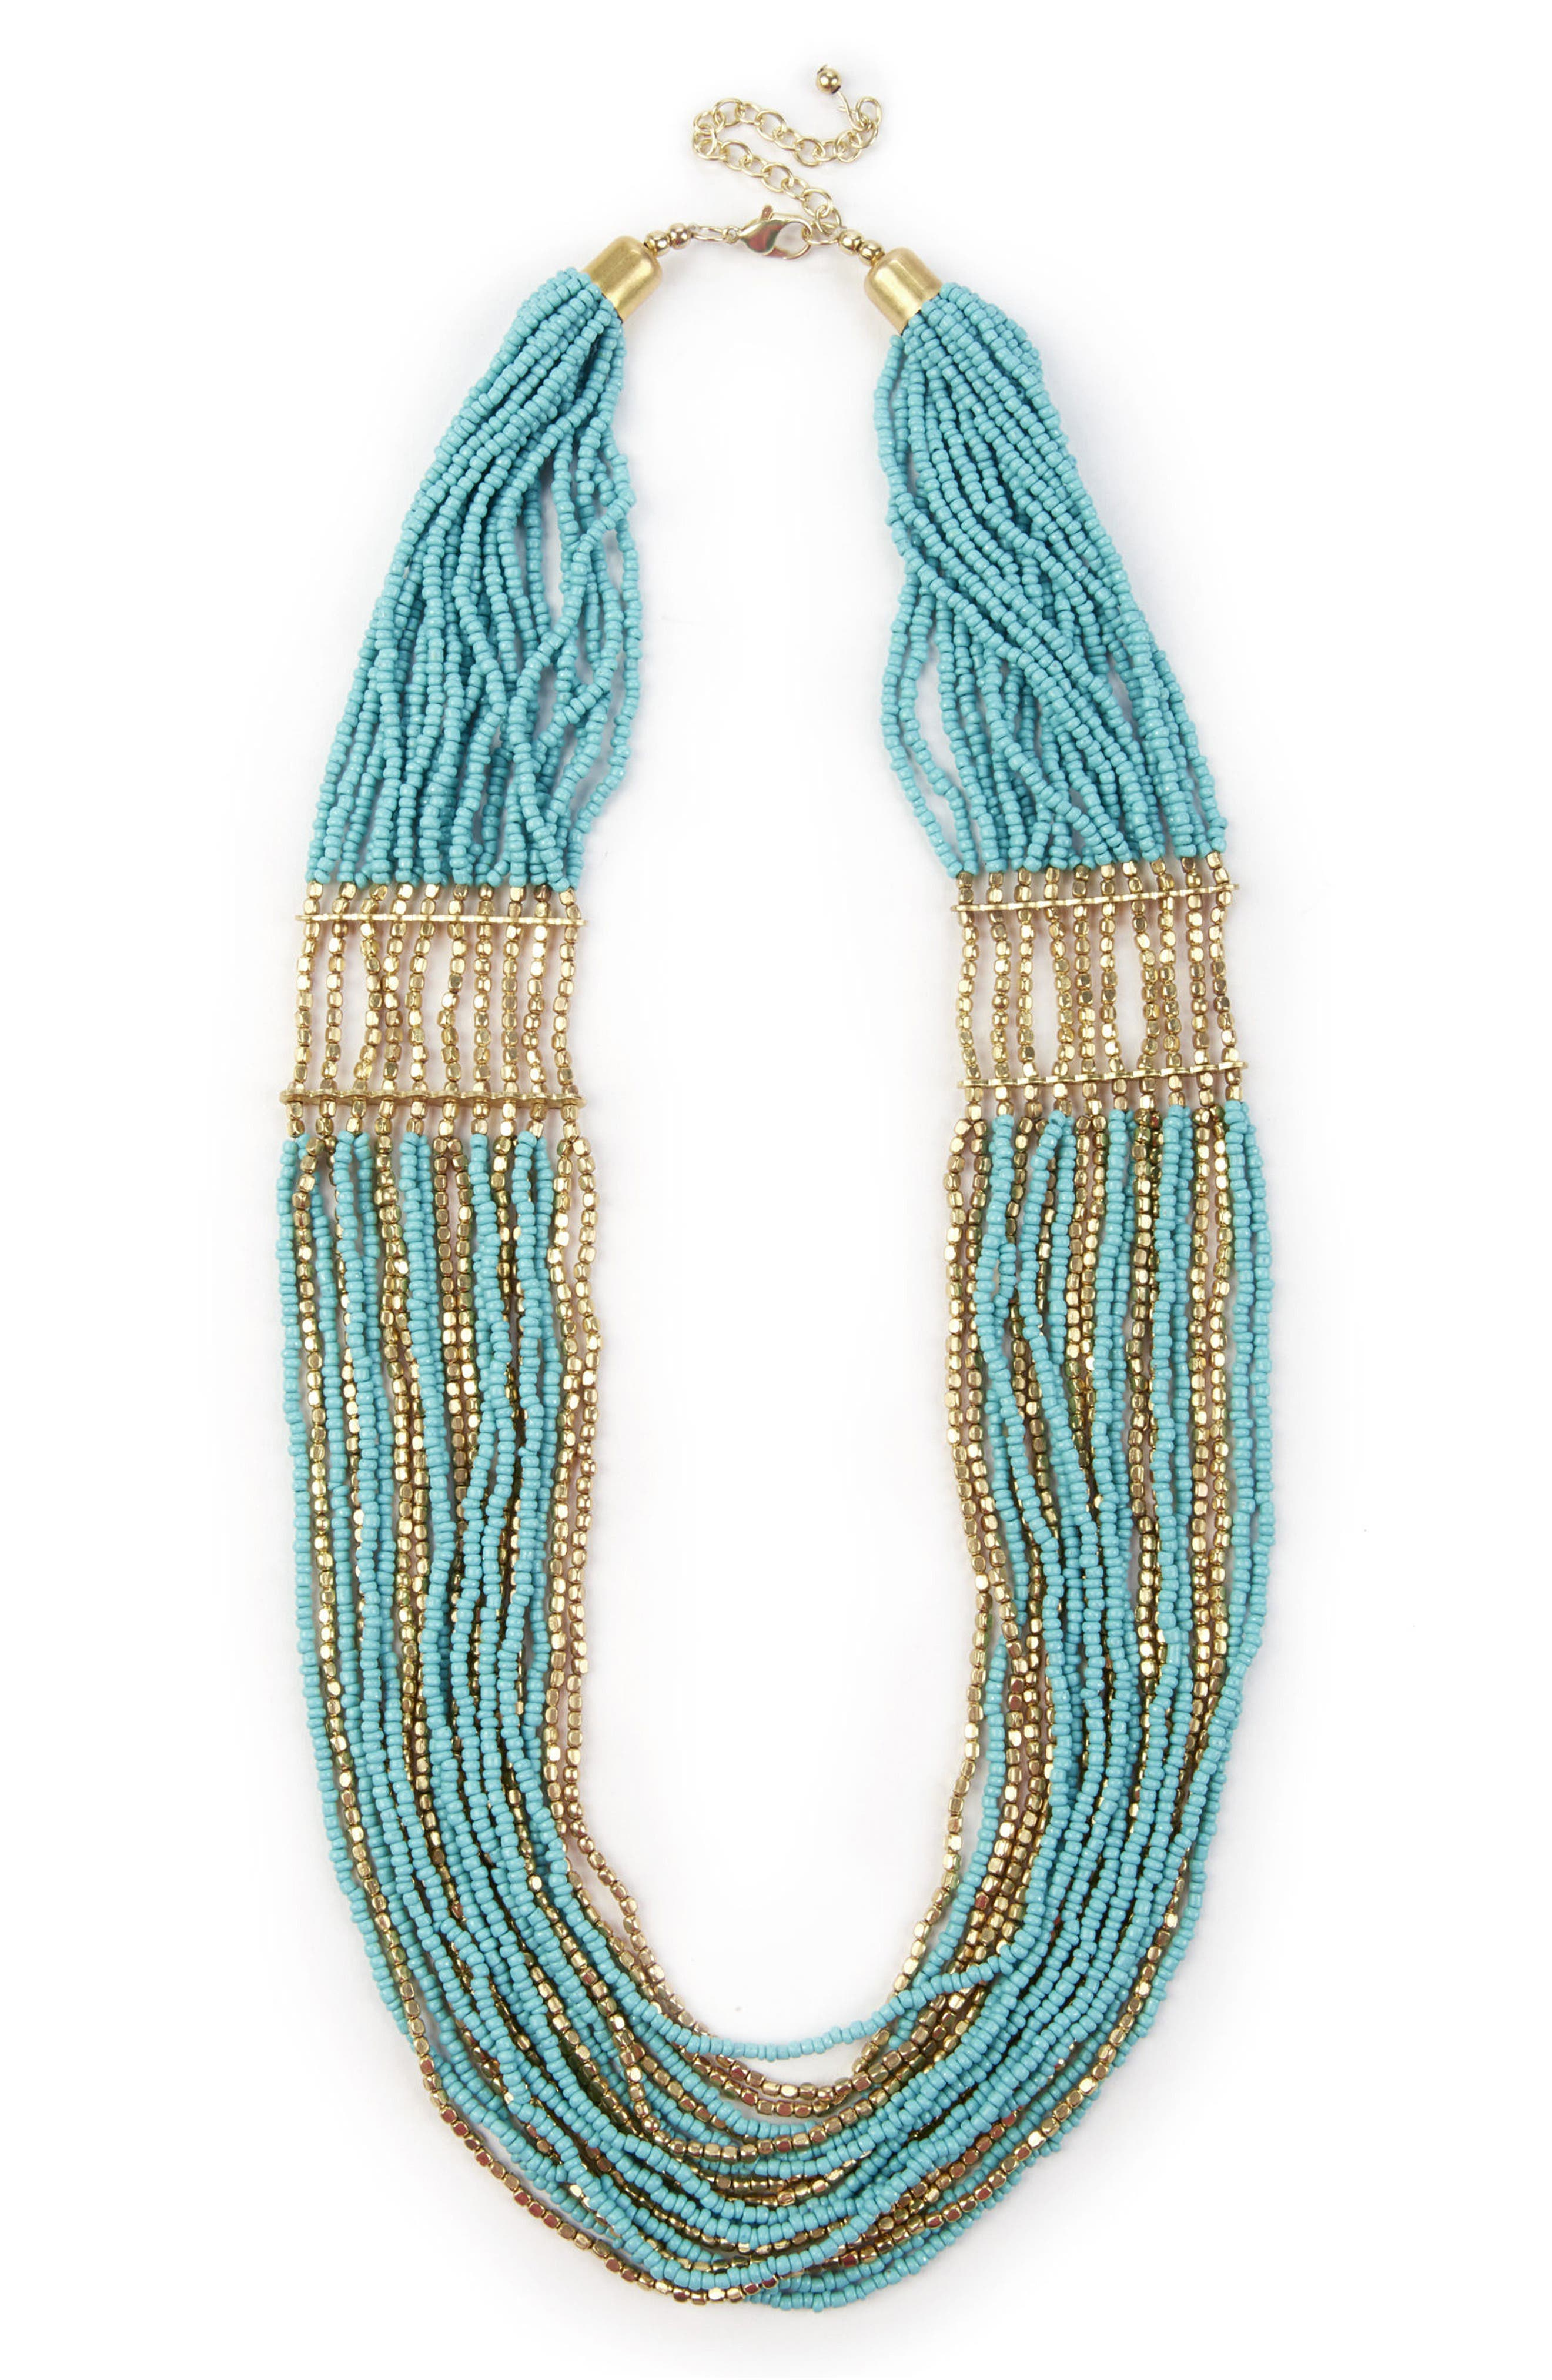 Multistrand Beaded Necklace,                         Main,                         color, 441